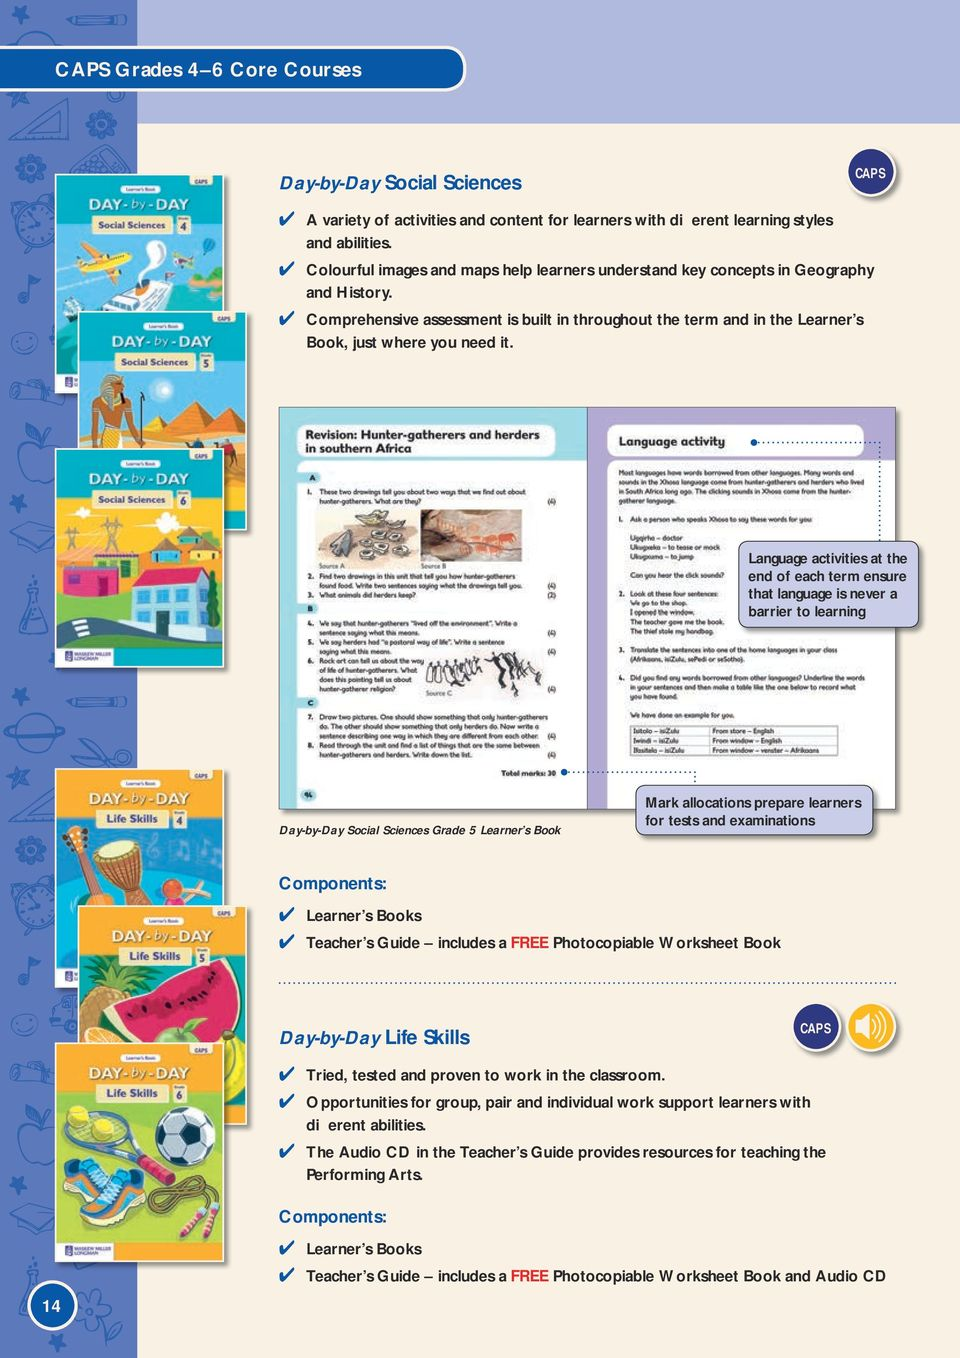 Language activities at the end of each term ensure that language is never a  barrier to